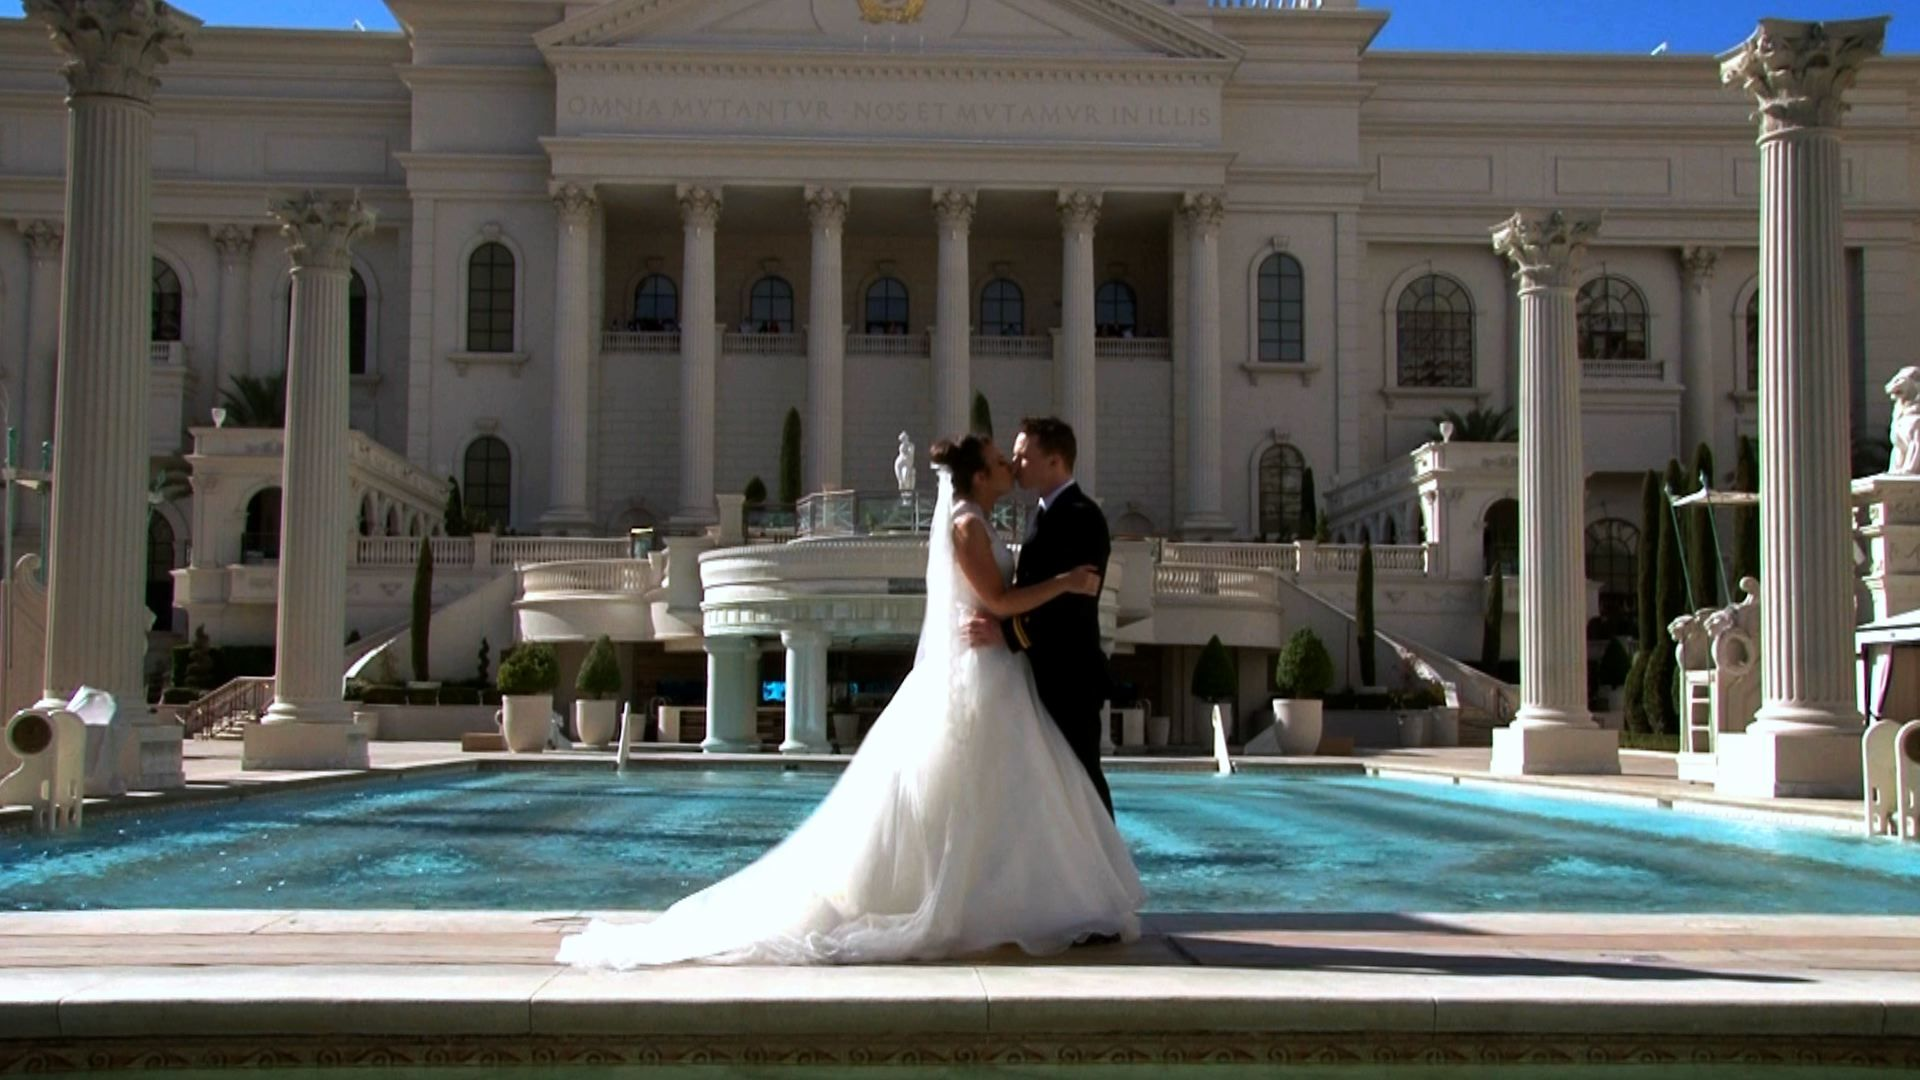 Caesars Palace Pool. Grace and Dave Wedding videographer